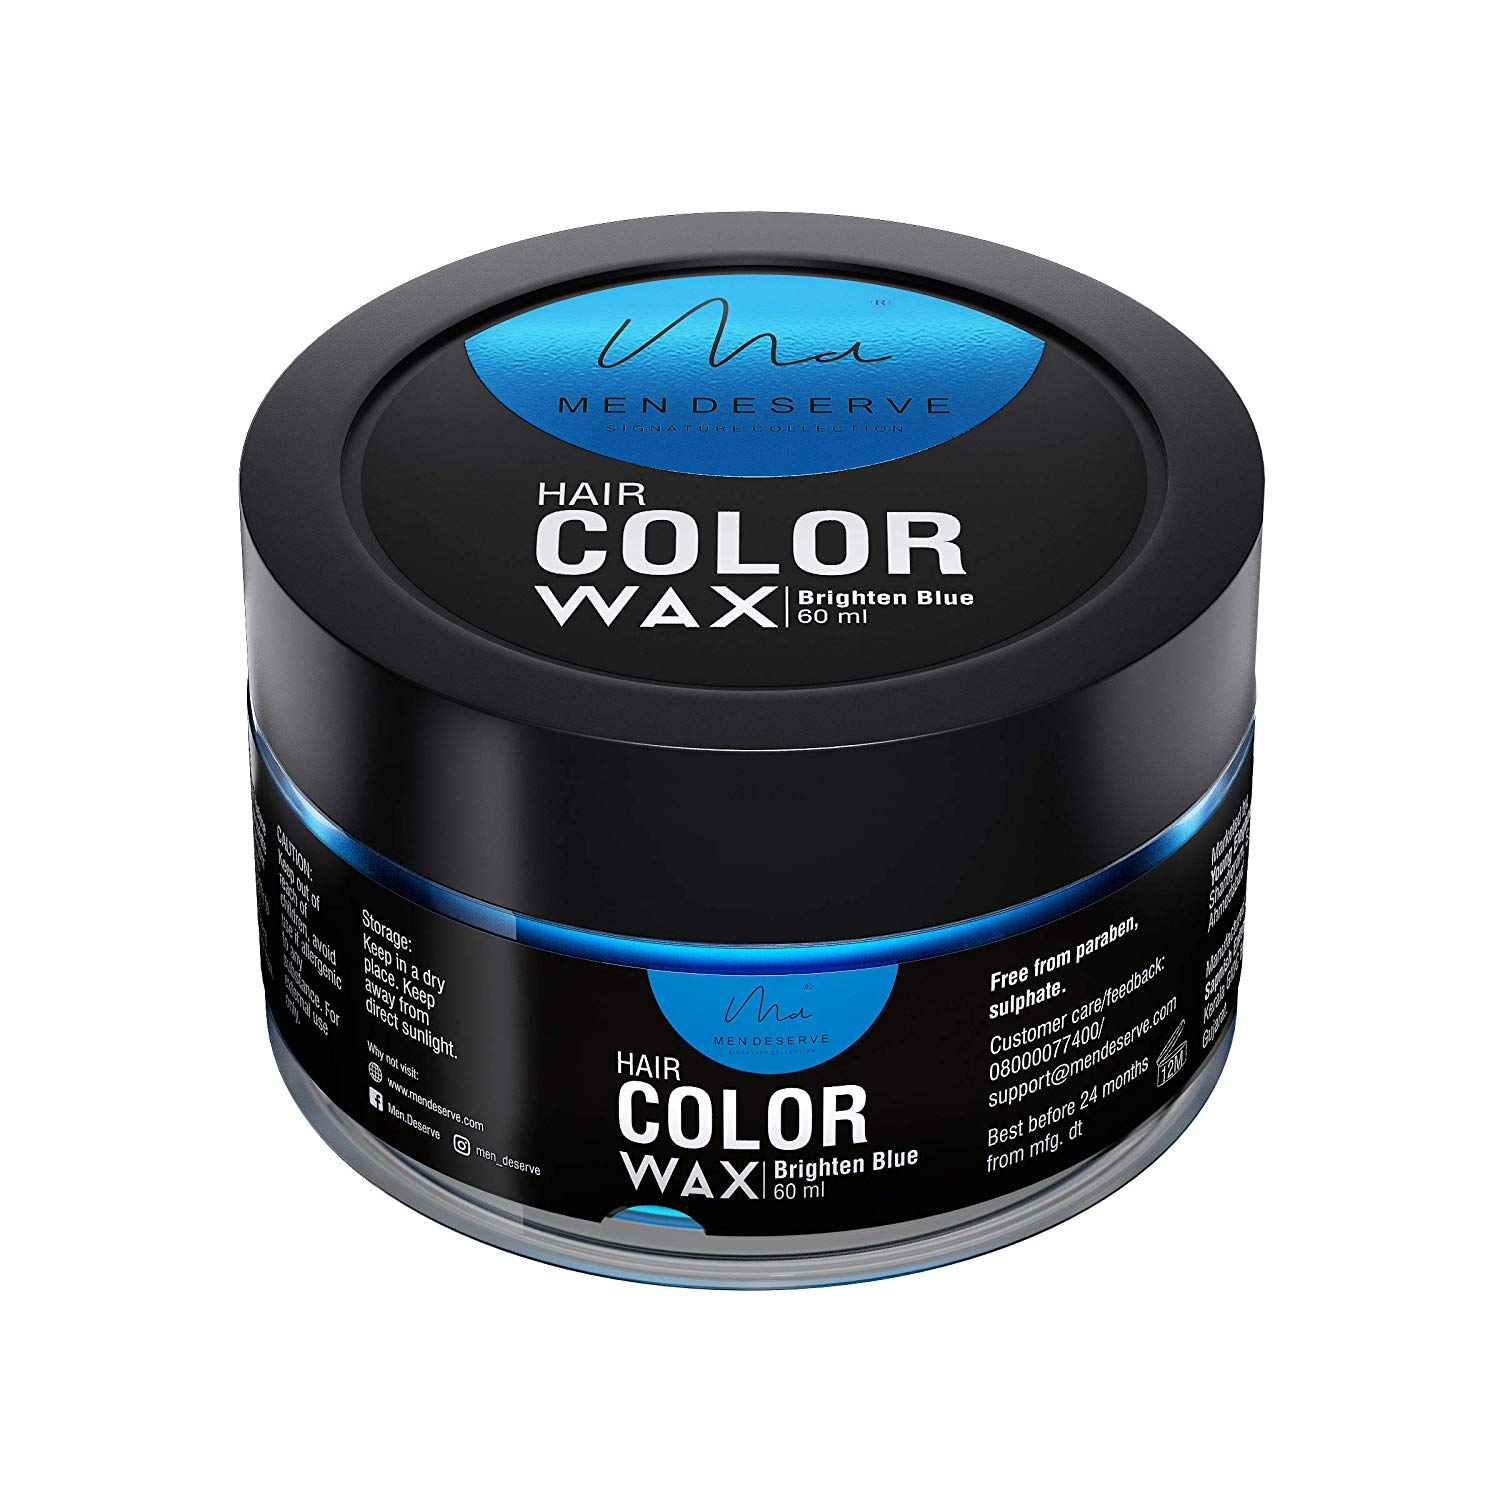 MEN-DESERVE-Hair-Styling-Color-Wax-For-Strong-Hold-brighten-blue